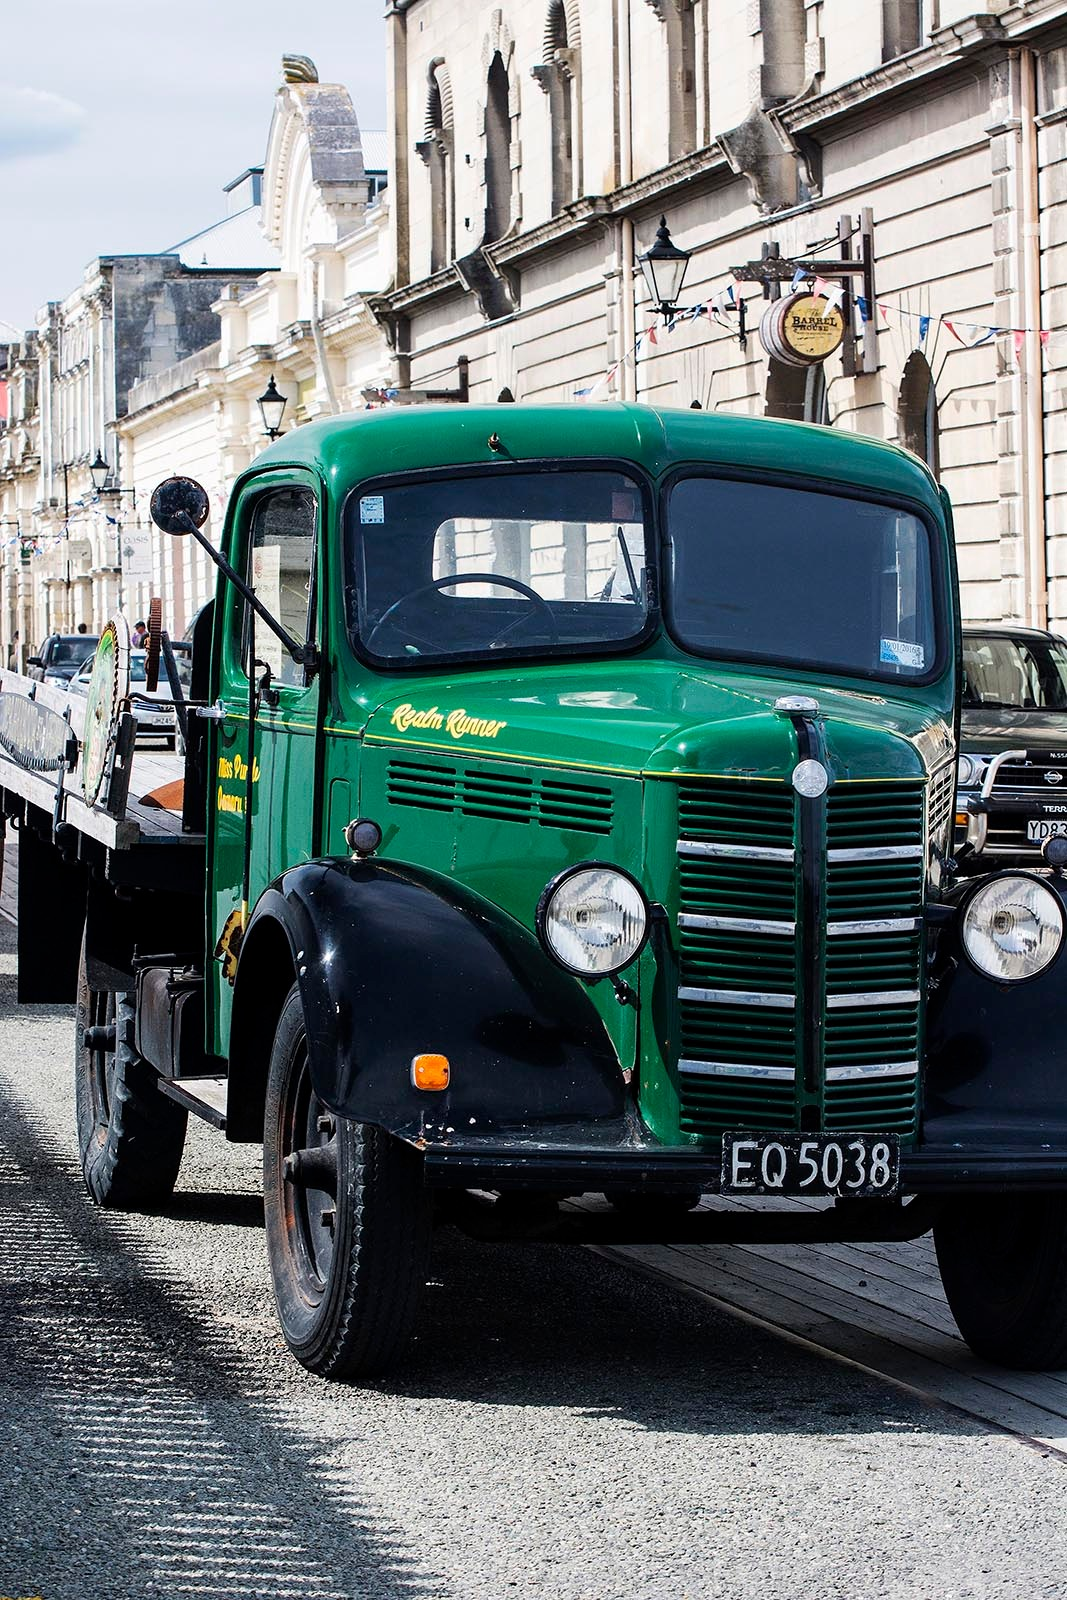 Antique Truck in Antique Town by TerraEncounters